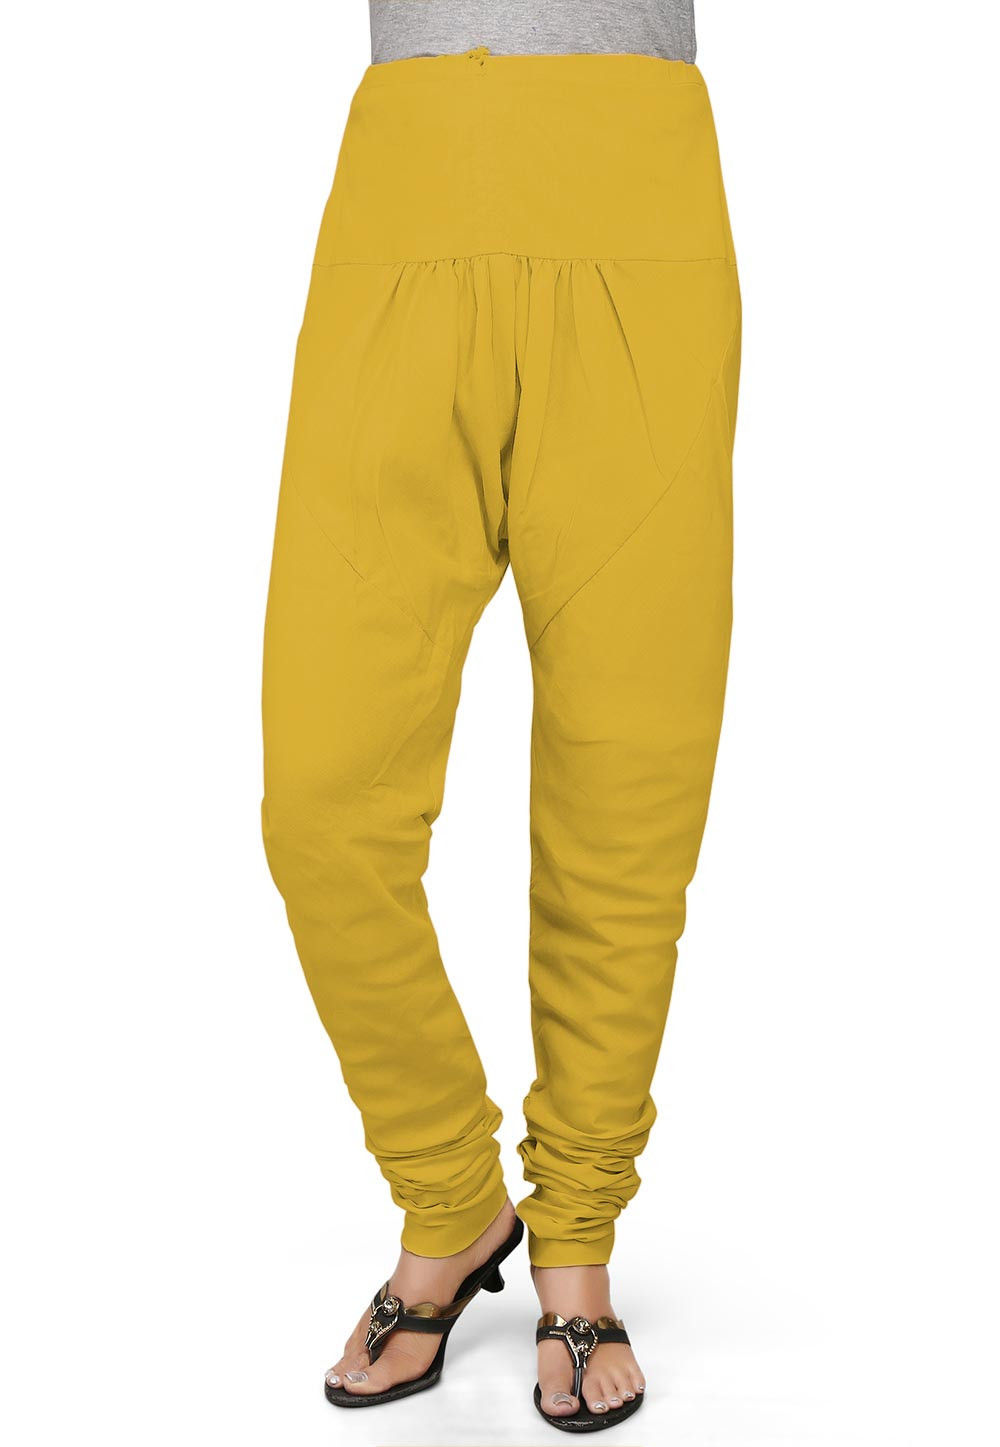 Solid Color Cotton Churidar in Yellow